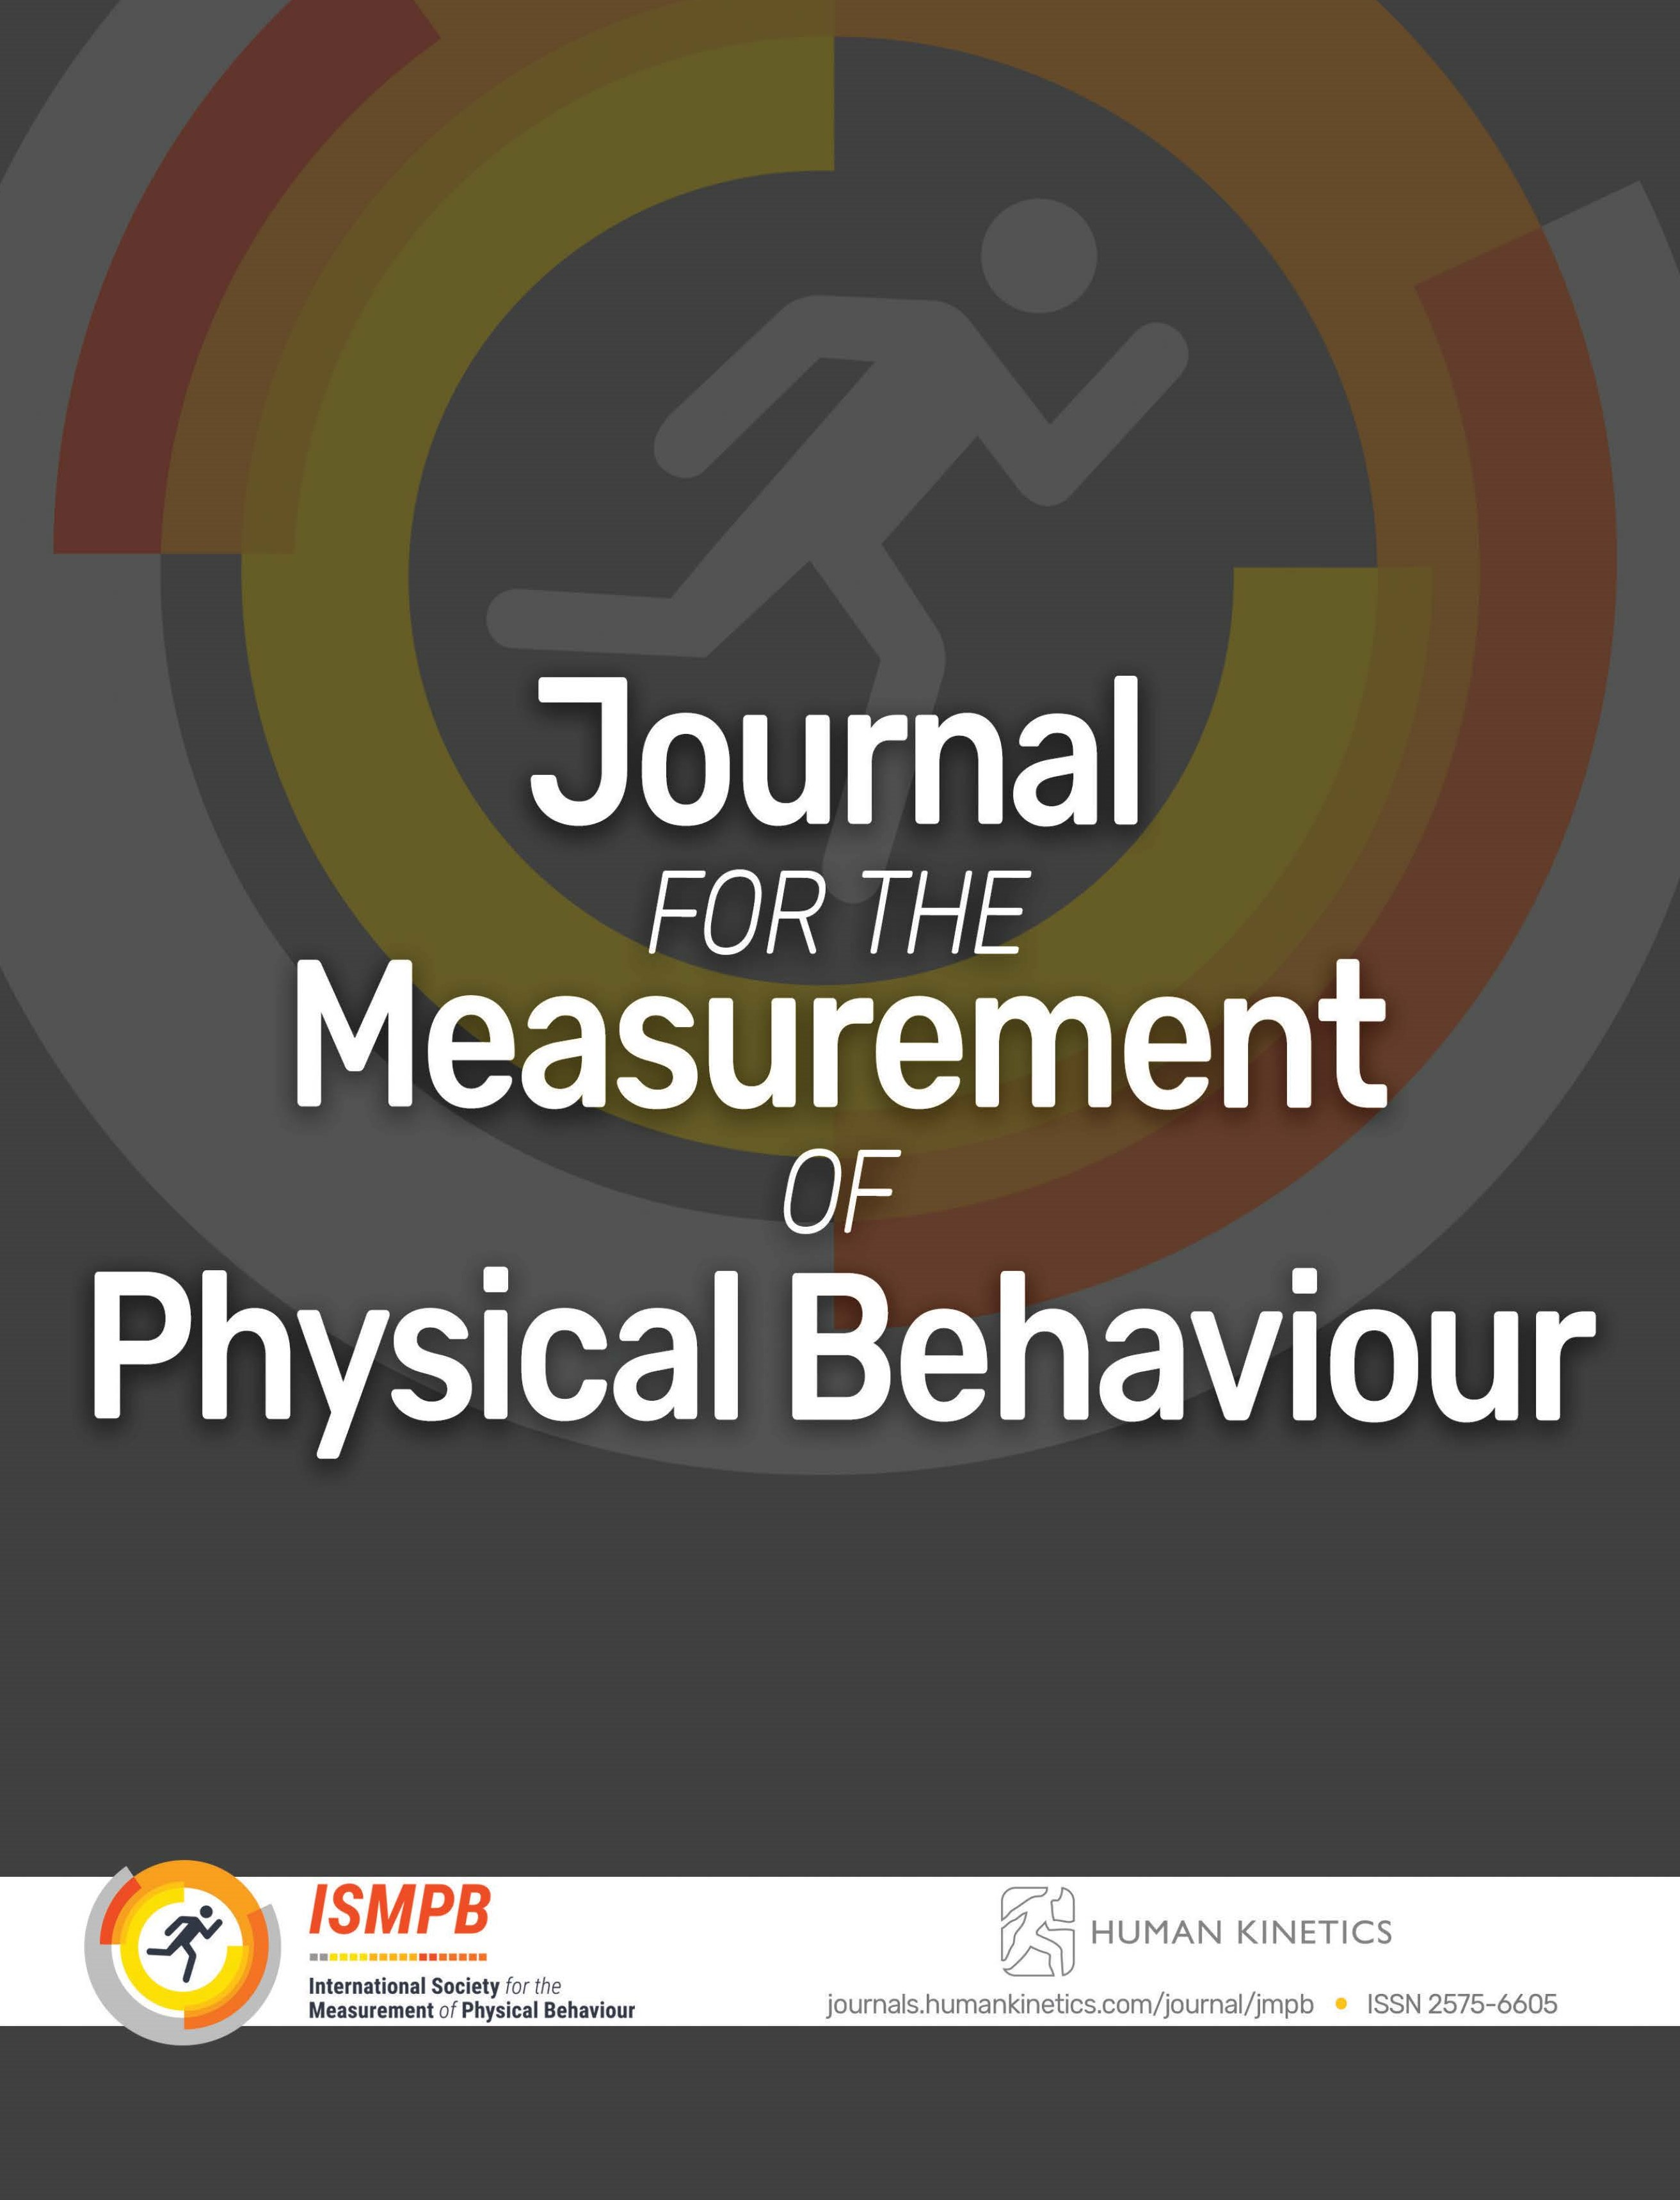 Journal for the Measurement of Physical Behaviour